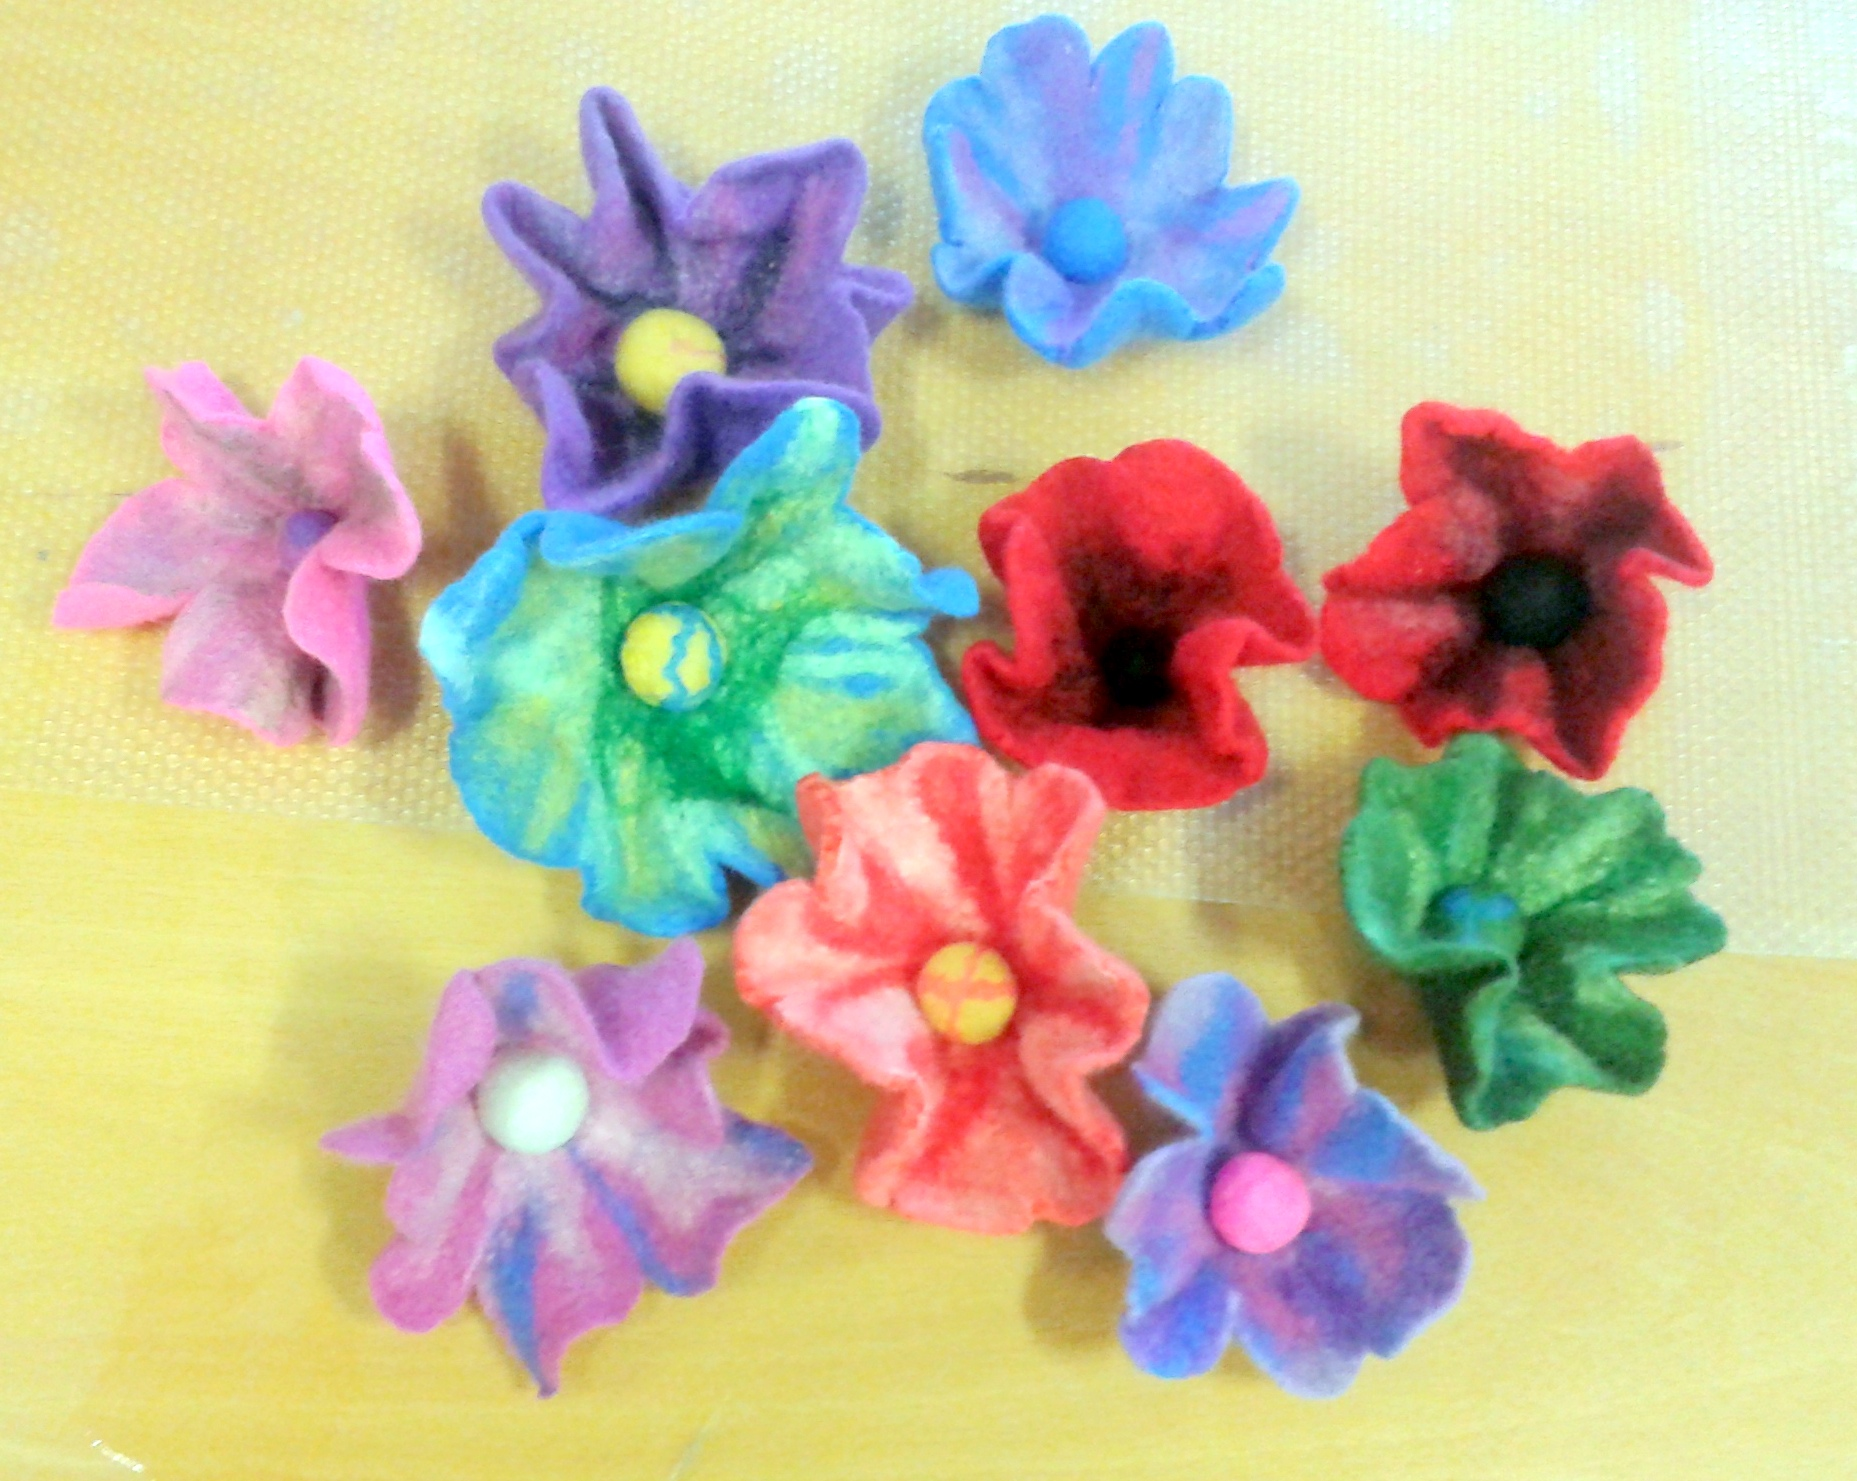 Finished flowers made by ladies